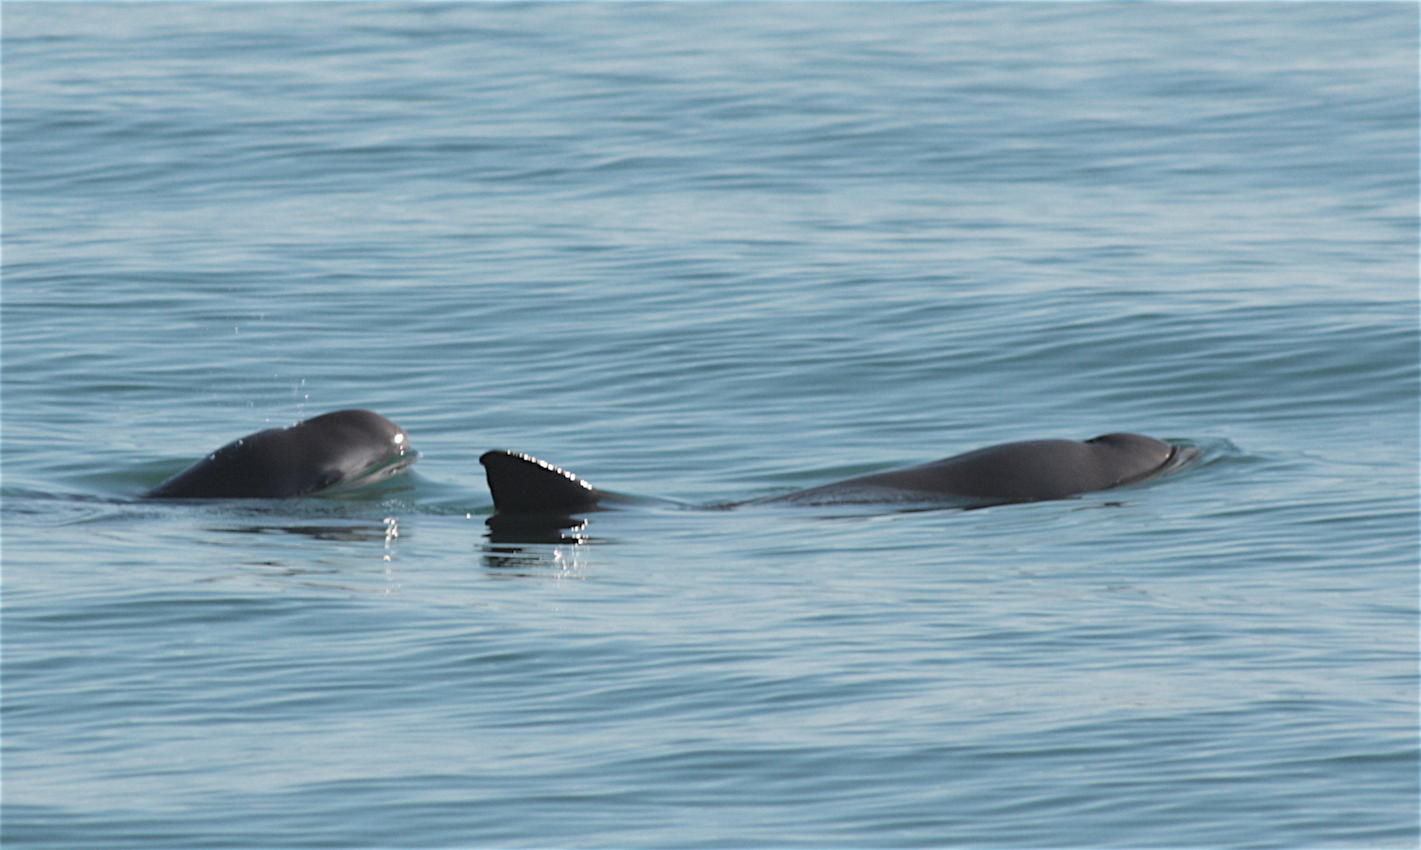 Two vaquitas pictured in the water. The right one has their back and rear fin visible, and the left one's face is visible.